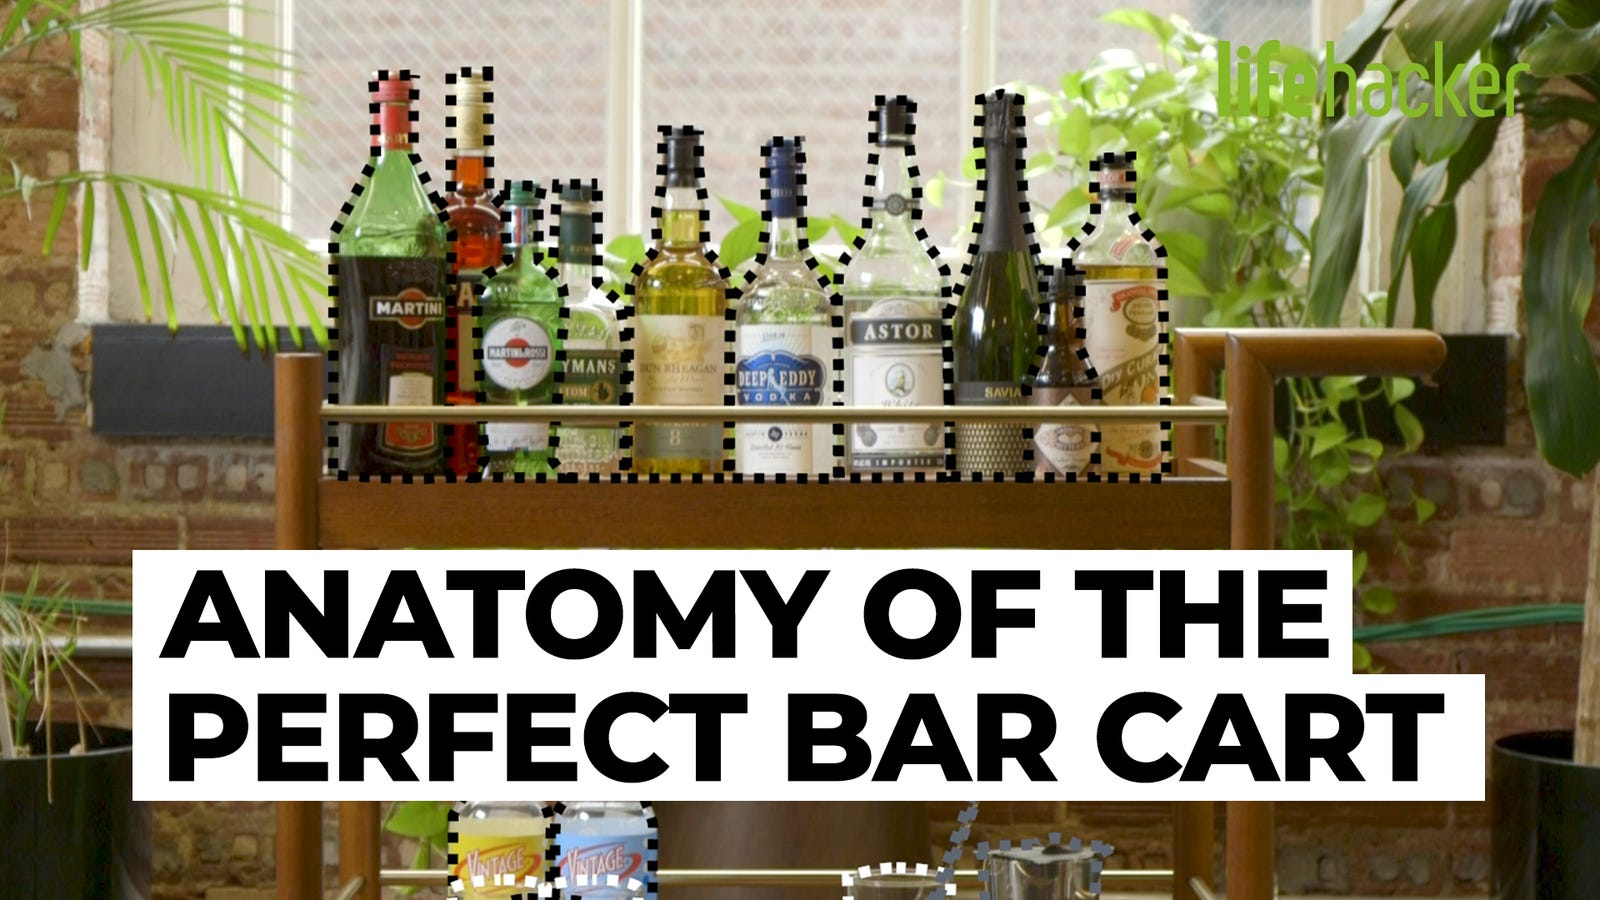 The Anatomy Of A Perfect Bar Cart Memes